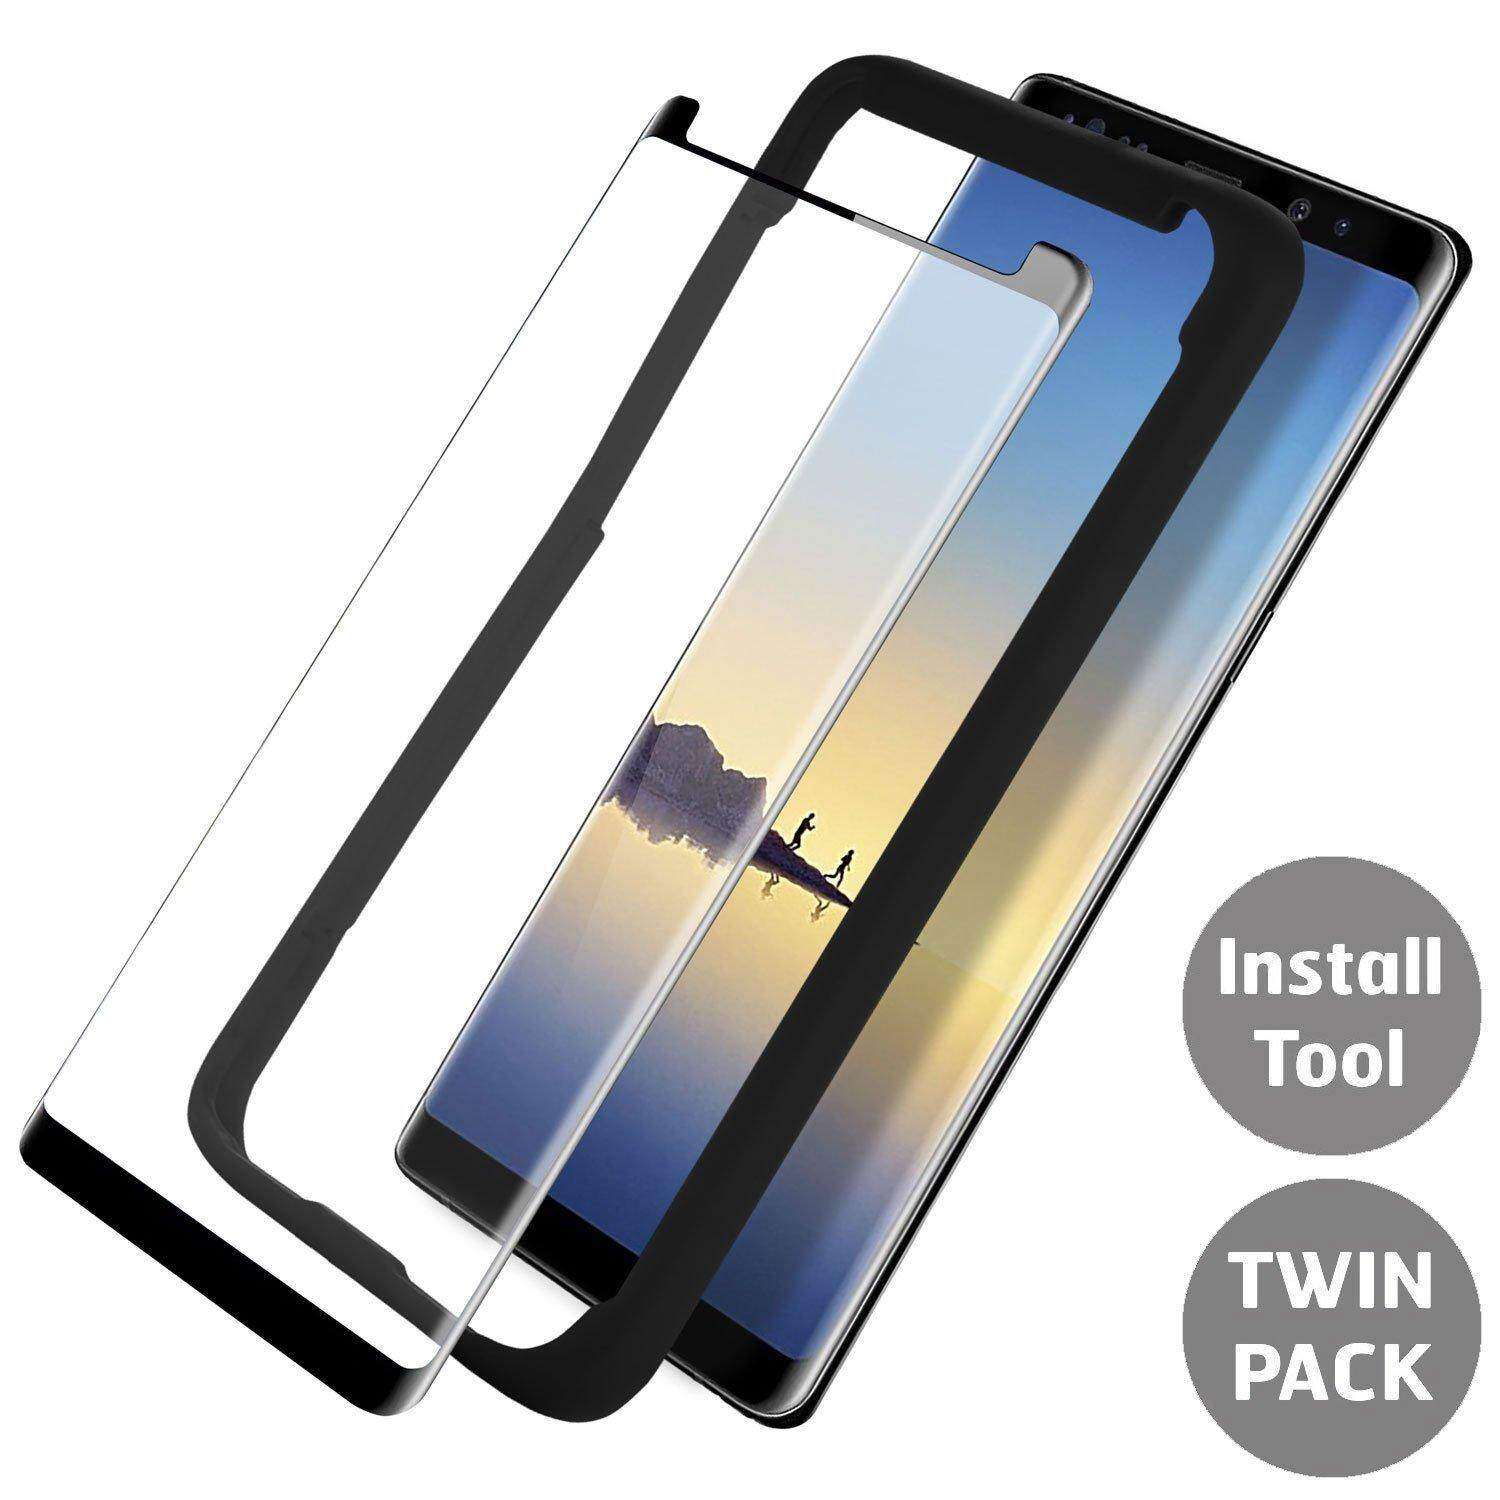 Buy Sell Cheapest K I Easyfit Best Quality Product Deals Clodi Popok Kain Little Hippo Easy Fit Motif Baby Boy Suit For Samsung Galaxy Note 8 Case Friendly Screen Protector Tempered Glass Compatible